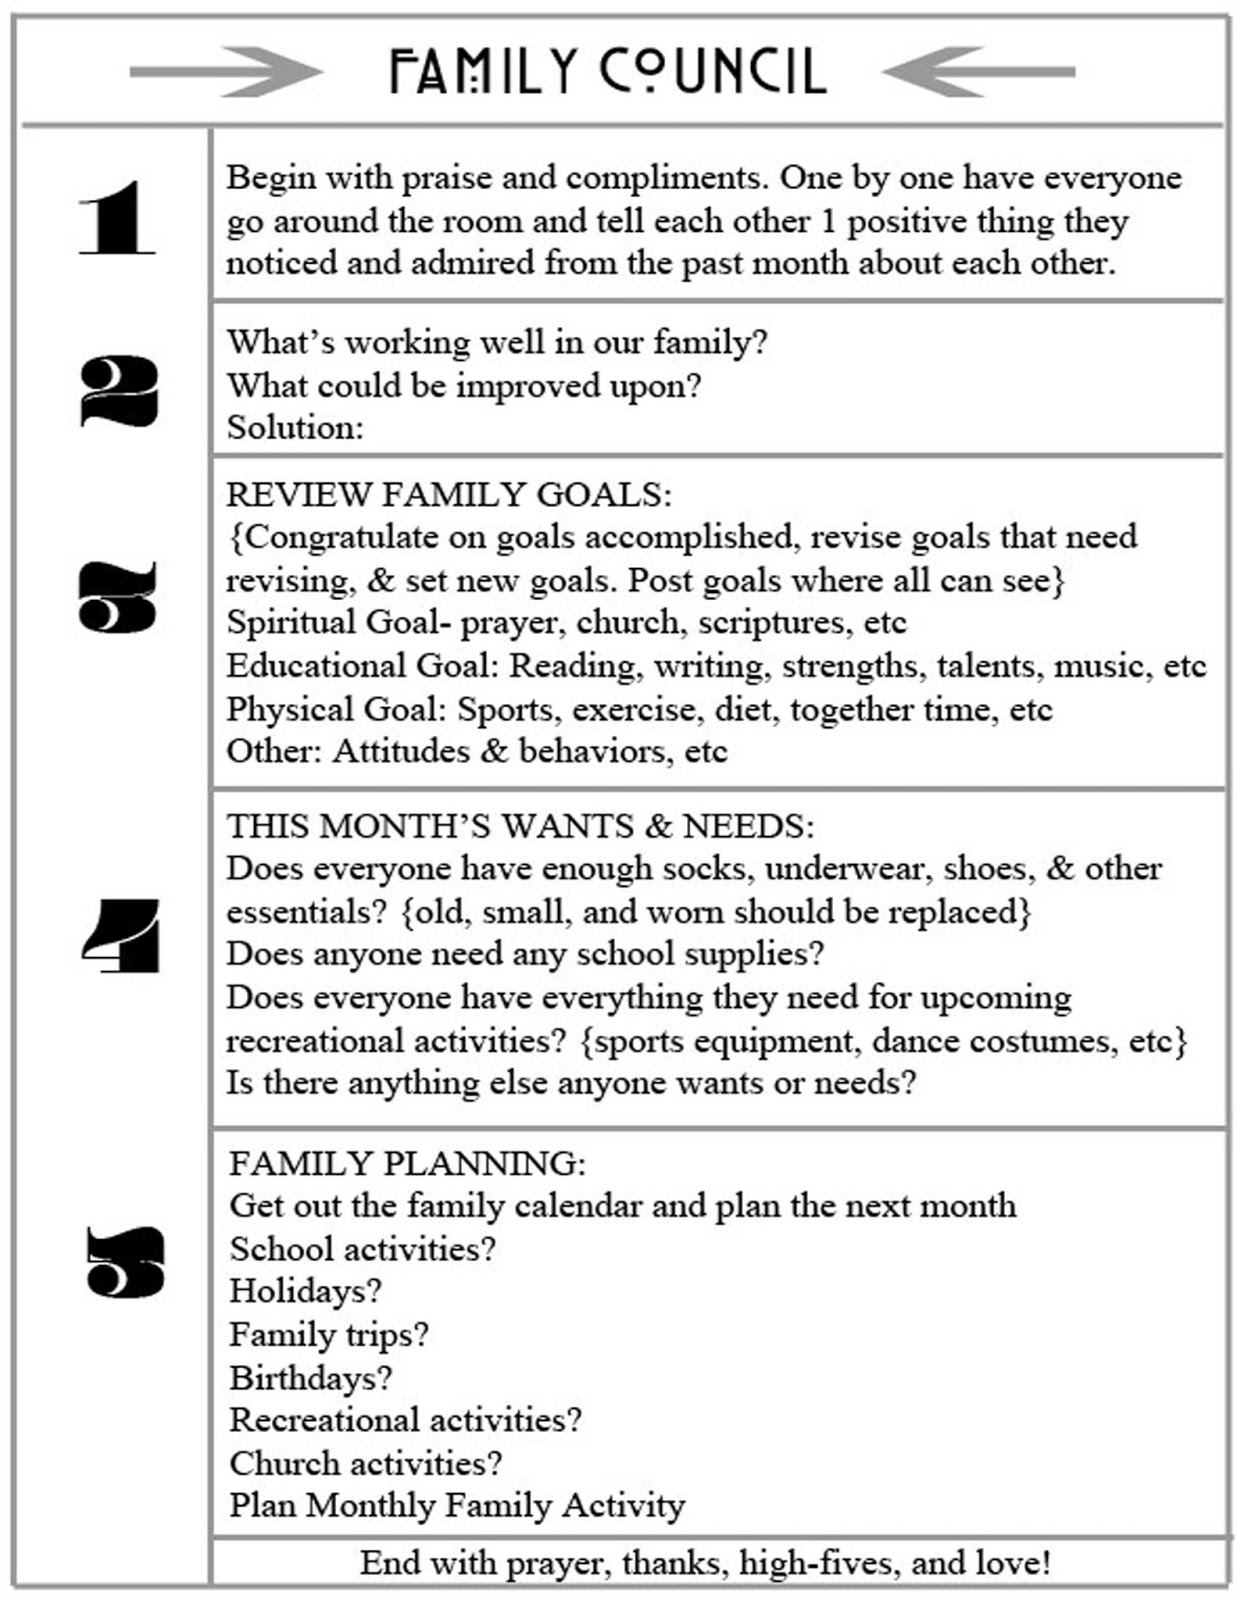 Miss Poppins Family Planner